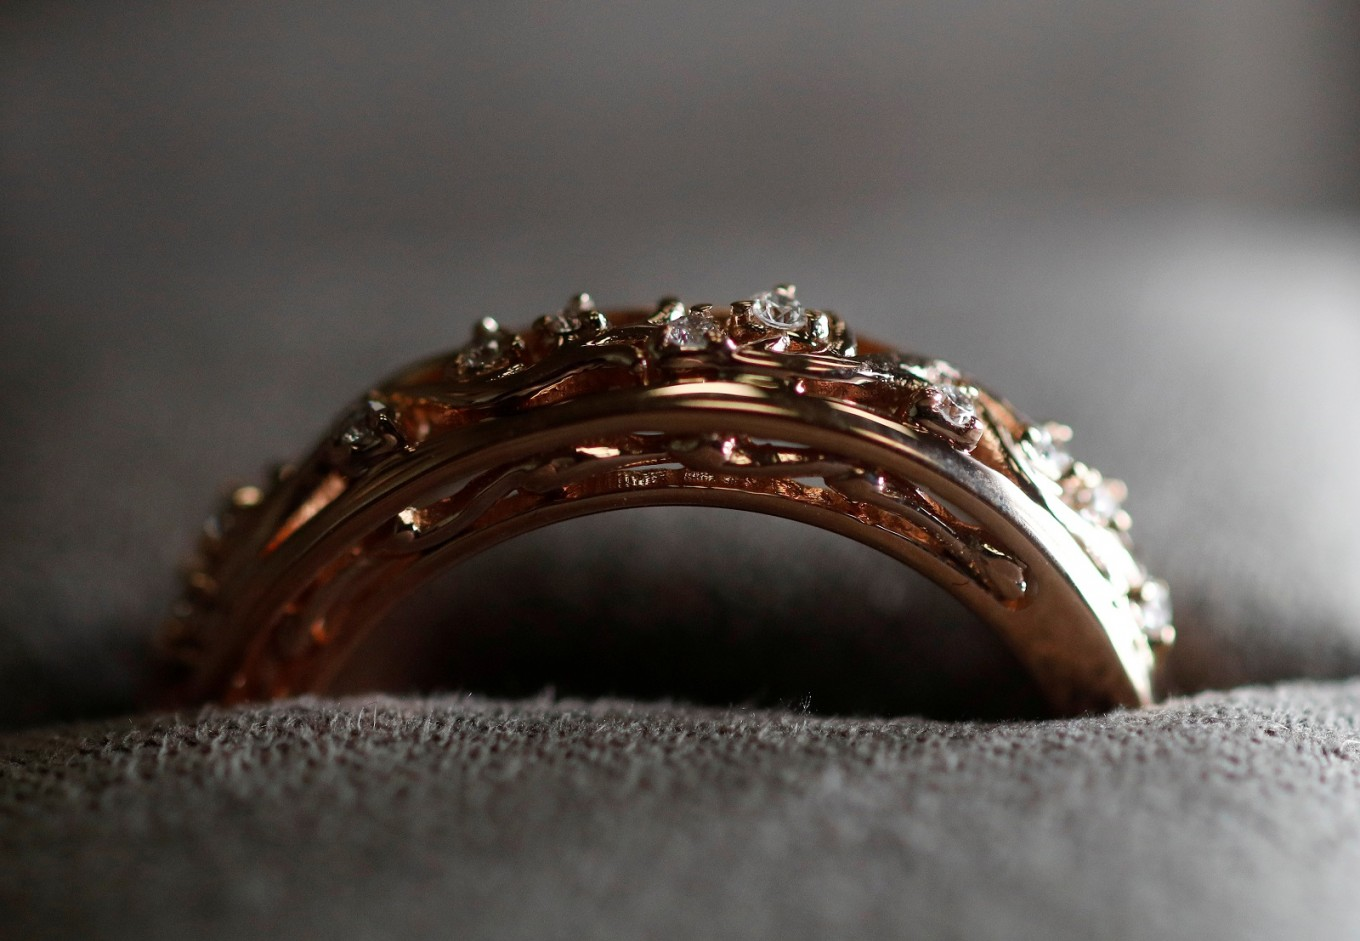 markles wedding ring to follow royal tradition of welsh